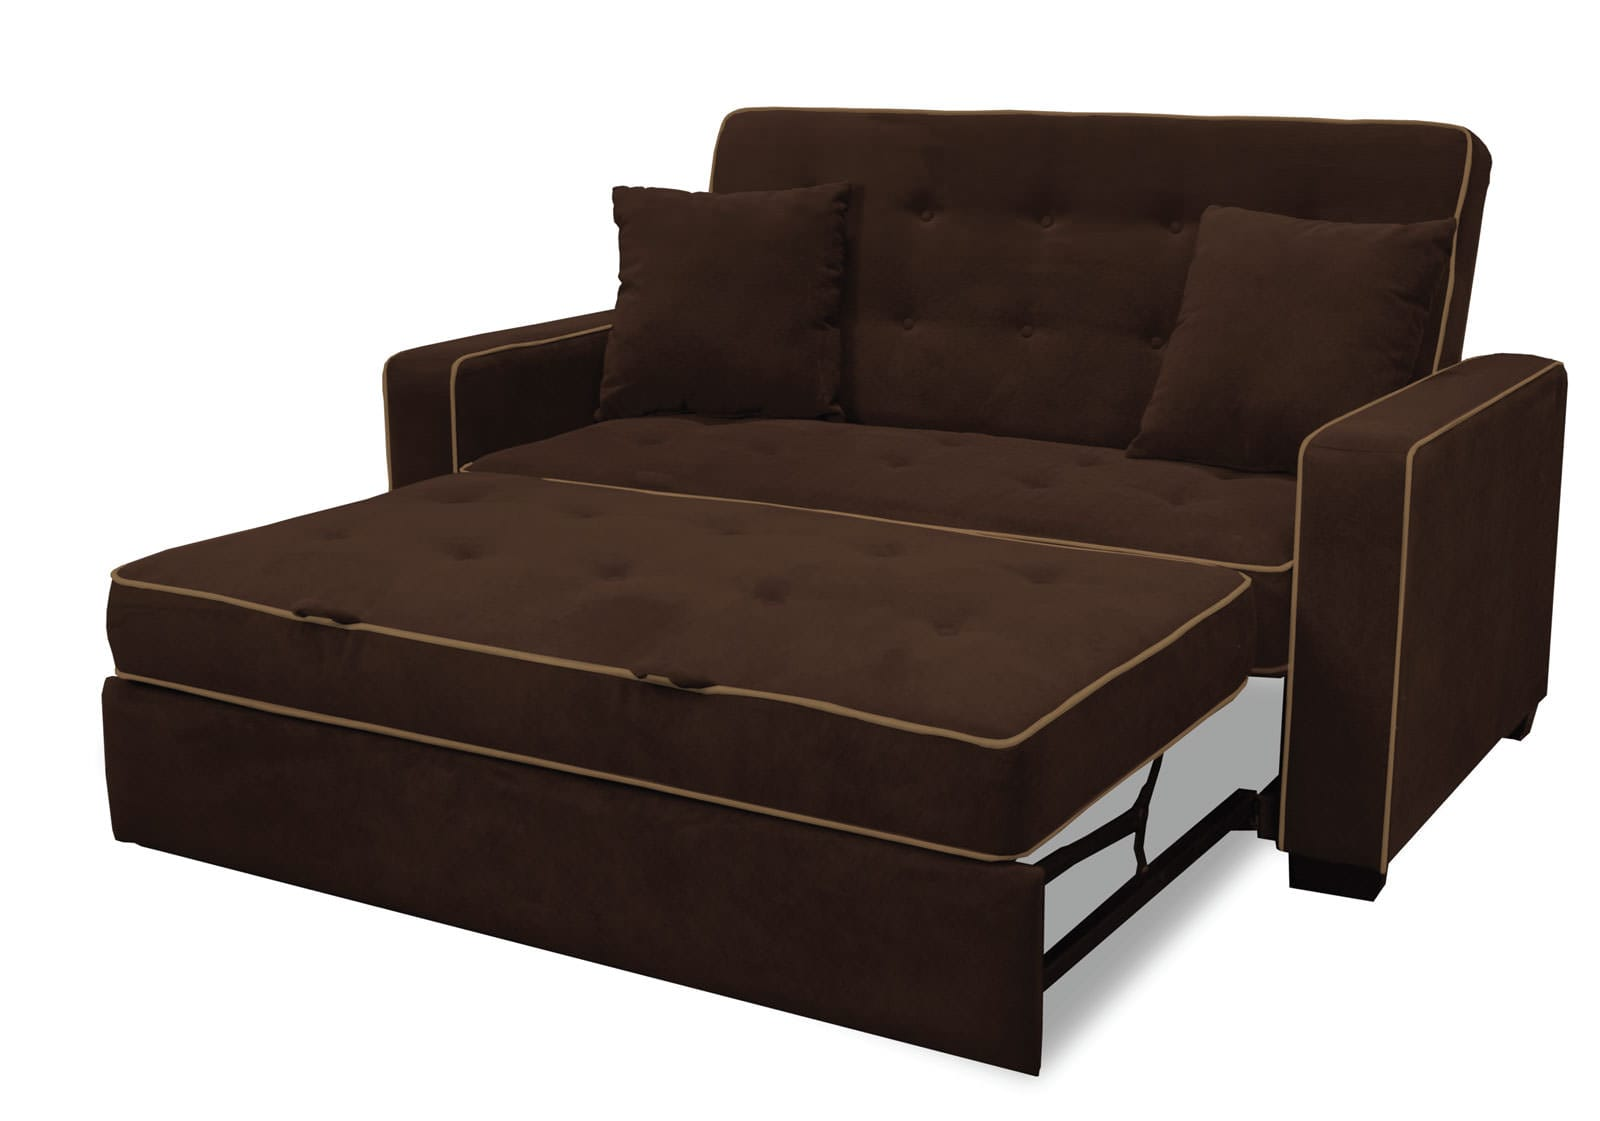 Augustine Loveseat Full Size Sleeper Java By Serta Lifestyle